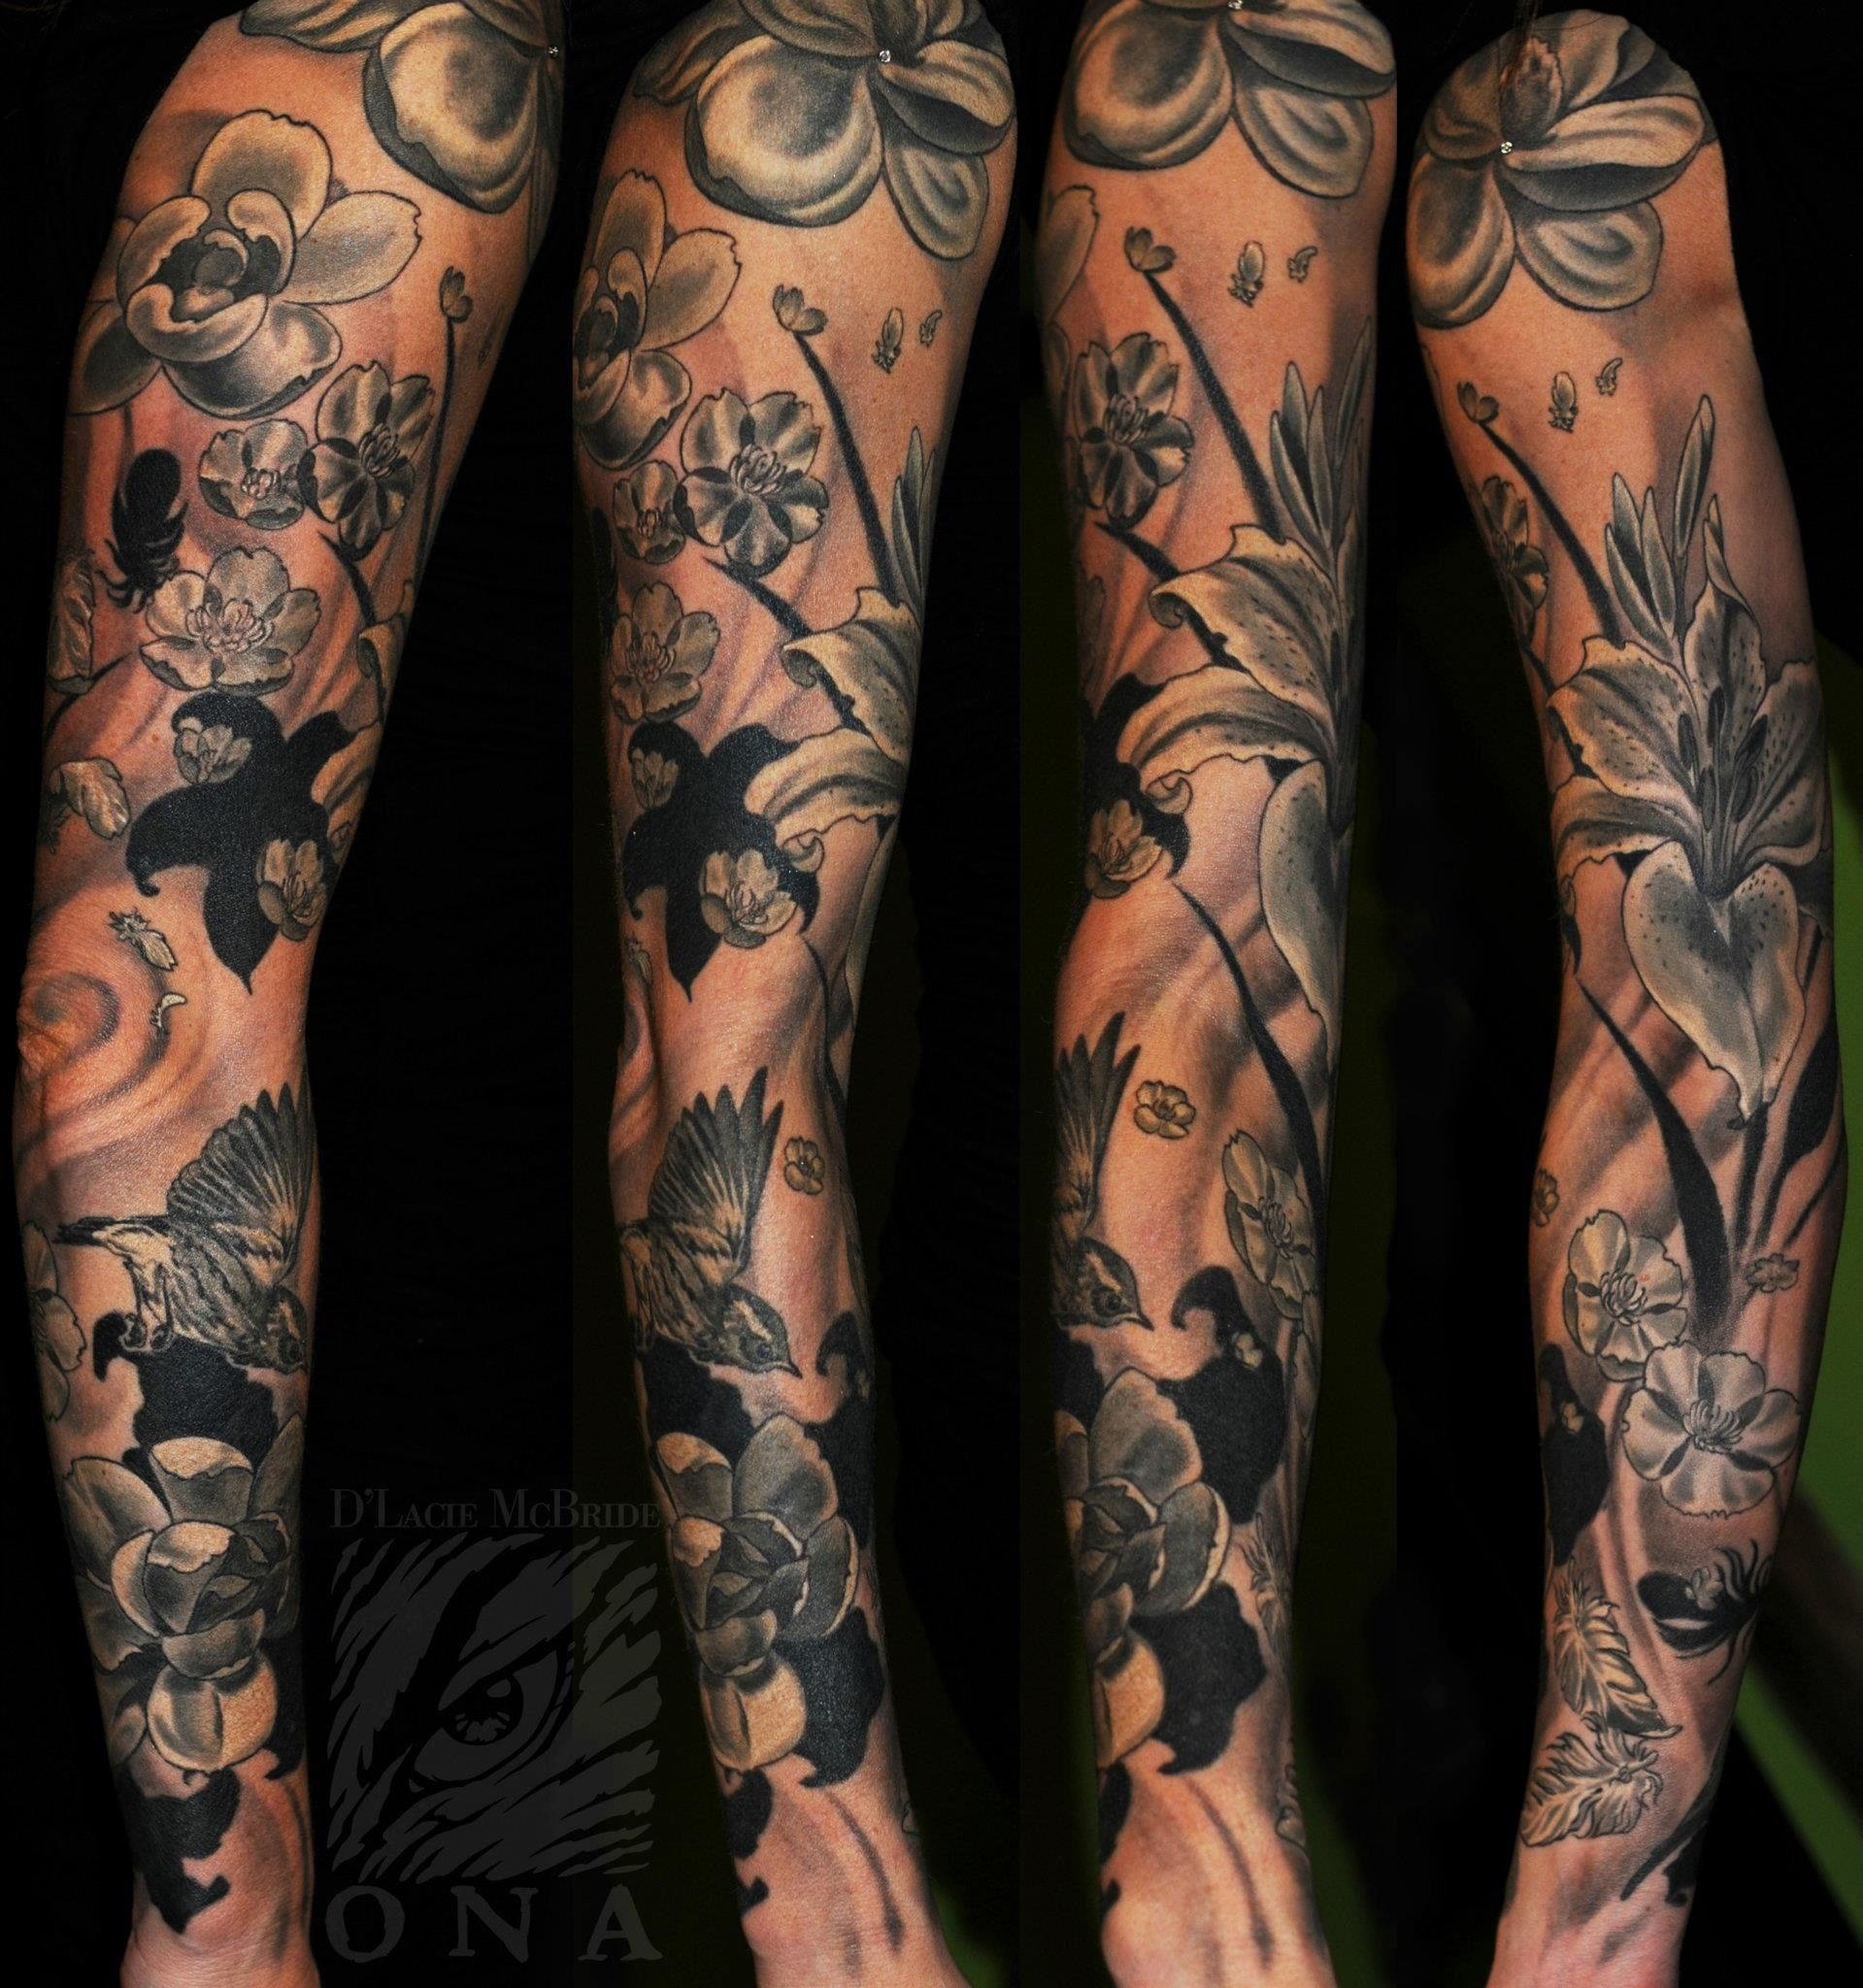 Magnolia Black And Grey Sleeve Tattoo By D Lacie Mcbride Optic Nerve Arts Portland Or Black Sleeve Tattoo Sleeve Tattoos Black And Grey Tattoos